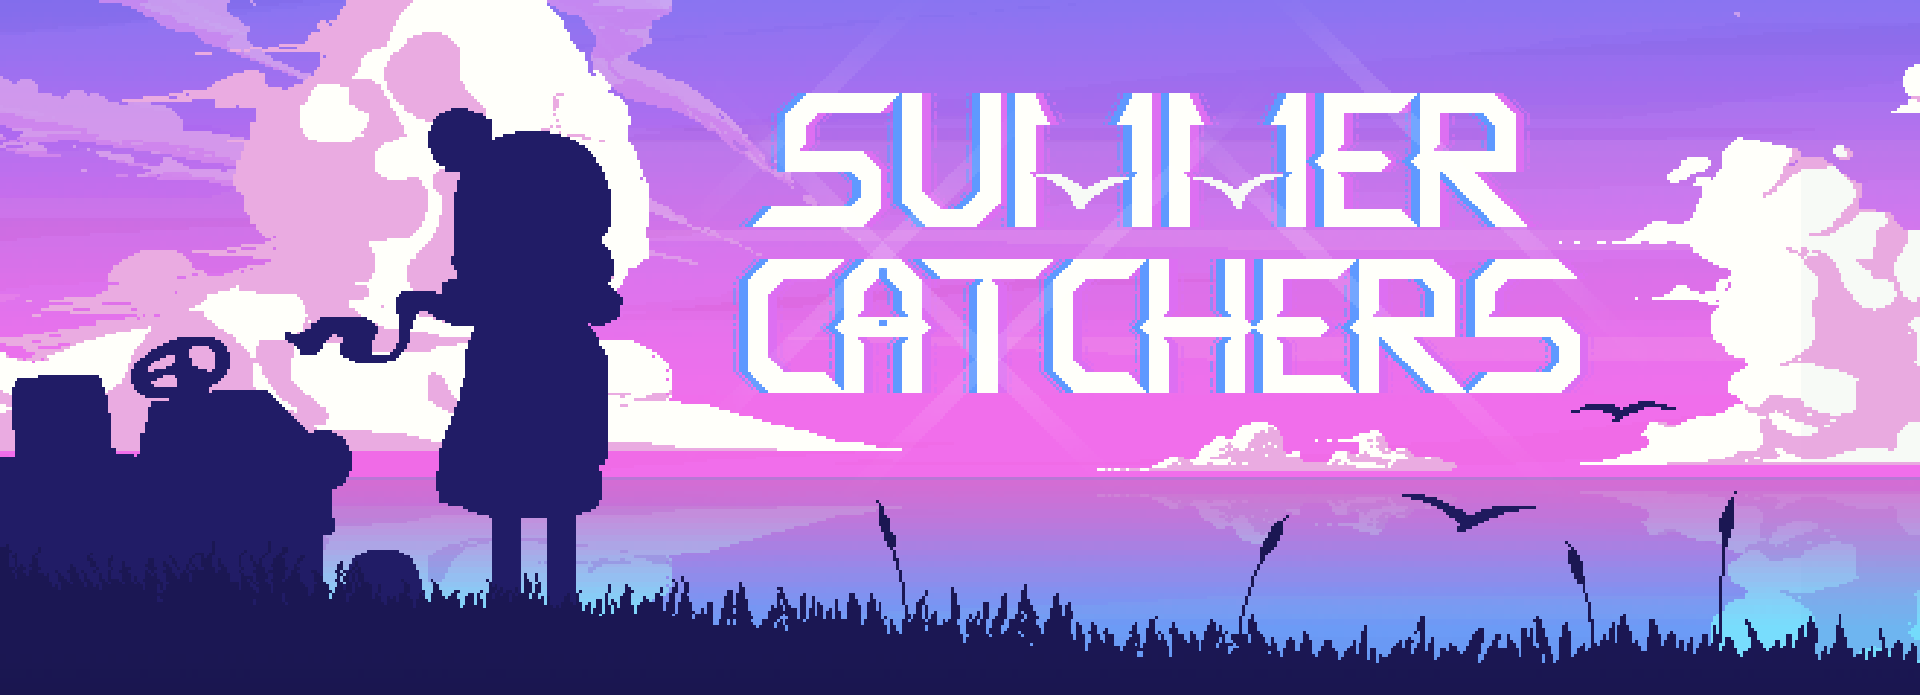 Summer_Catchers_wide_banner